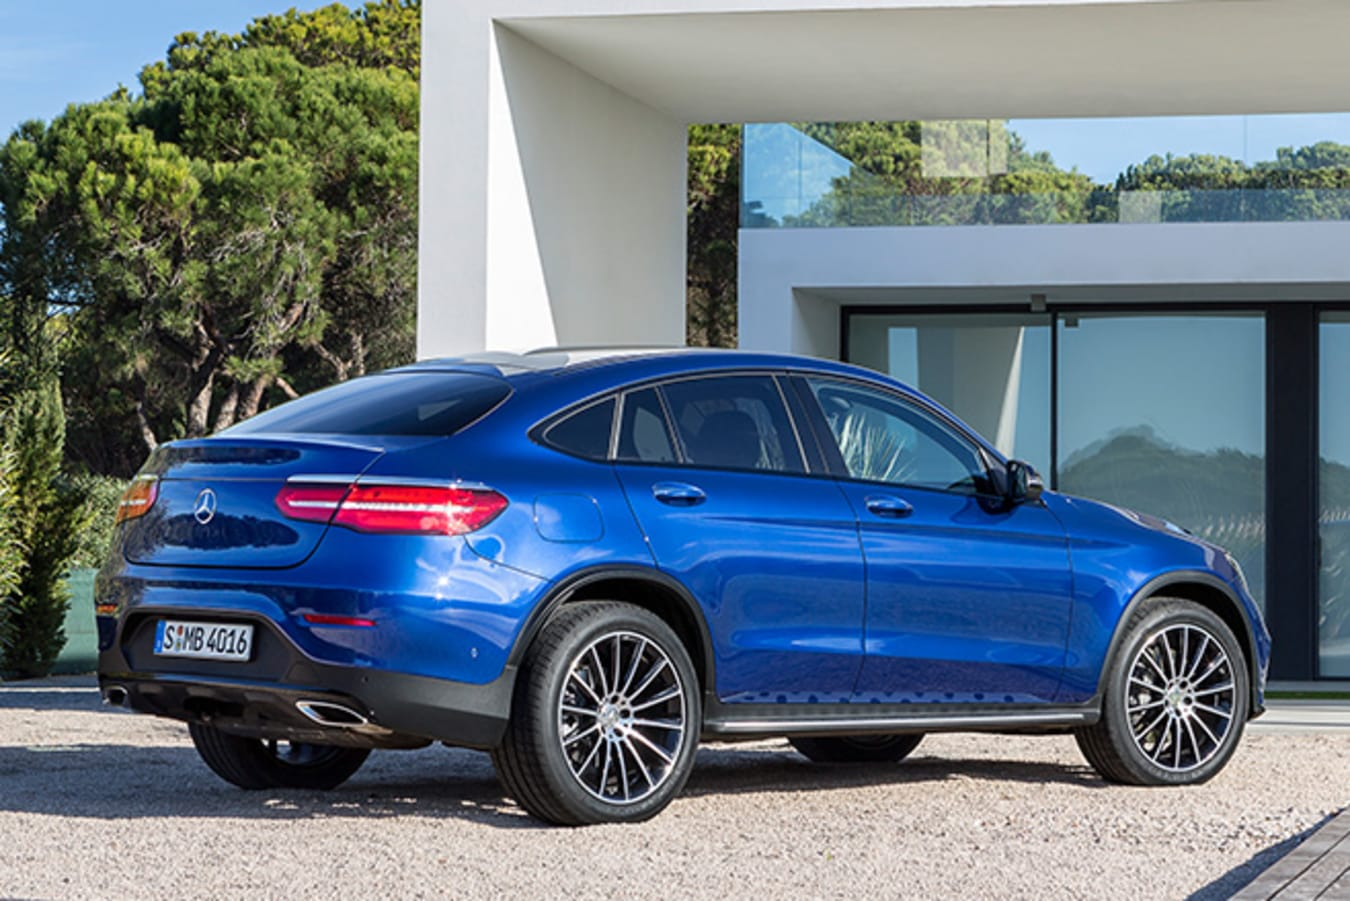 Mercedes GLC Coupe side rear